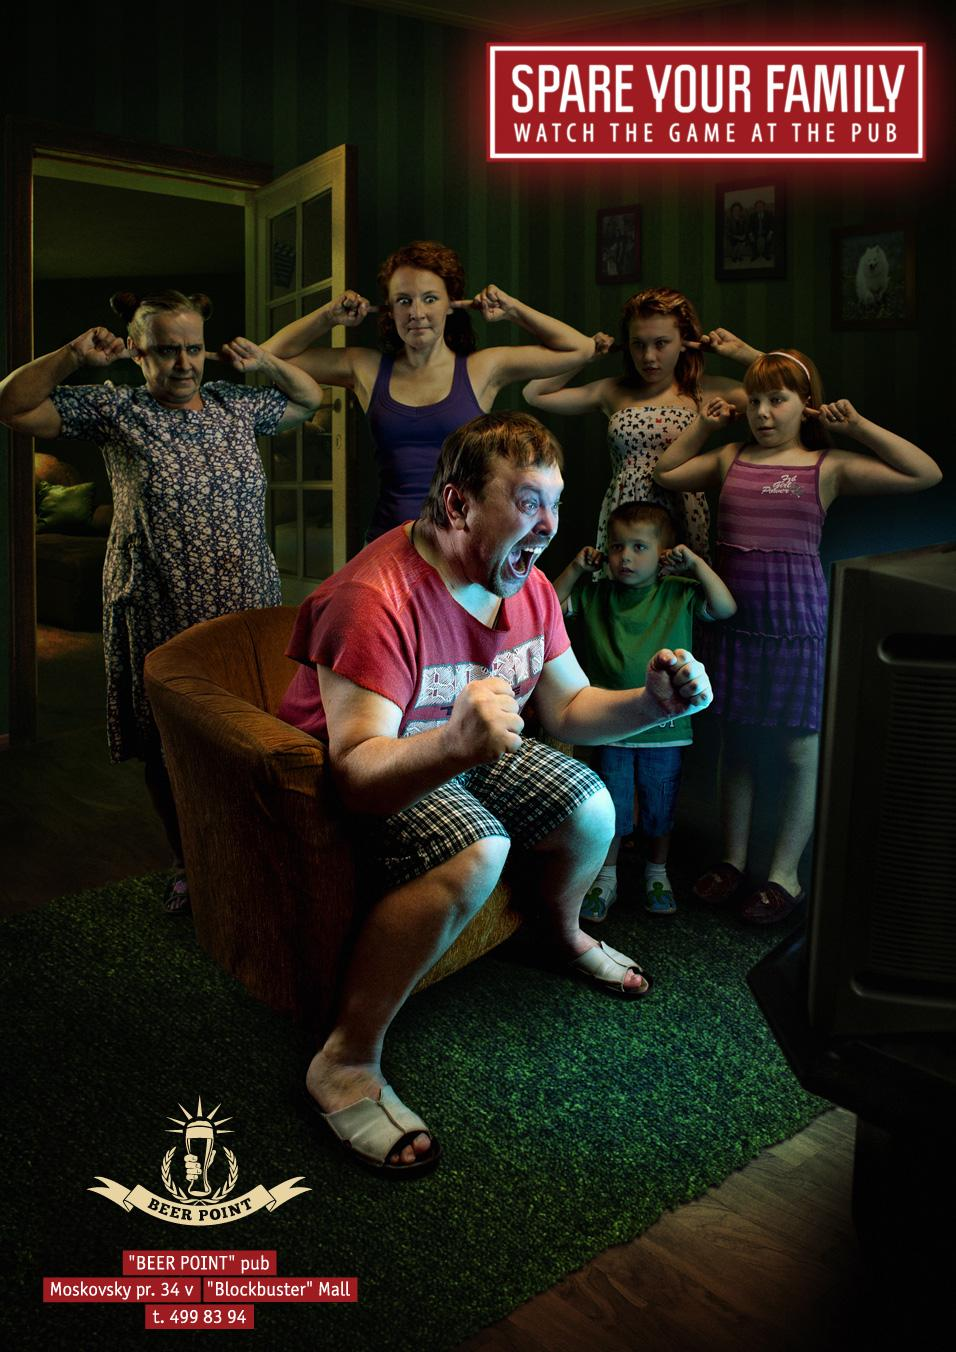 Beer Point Print Ad -  Spare your family